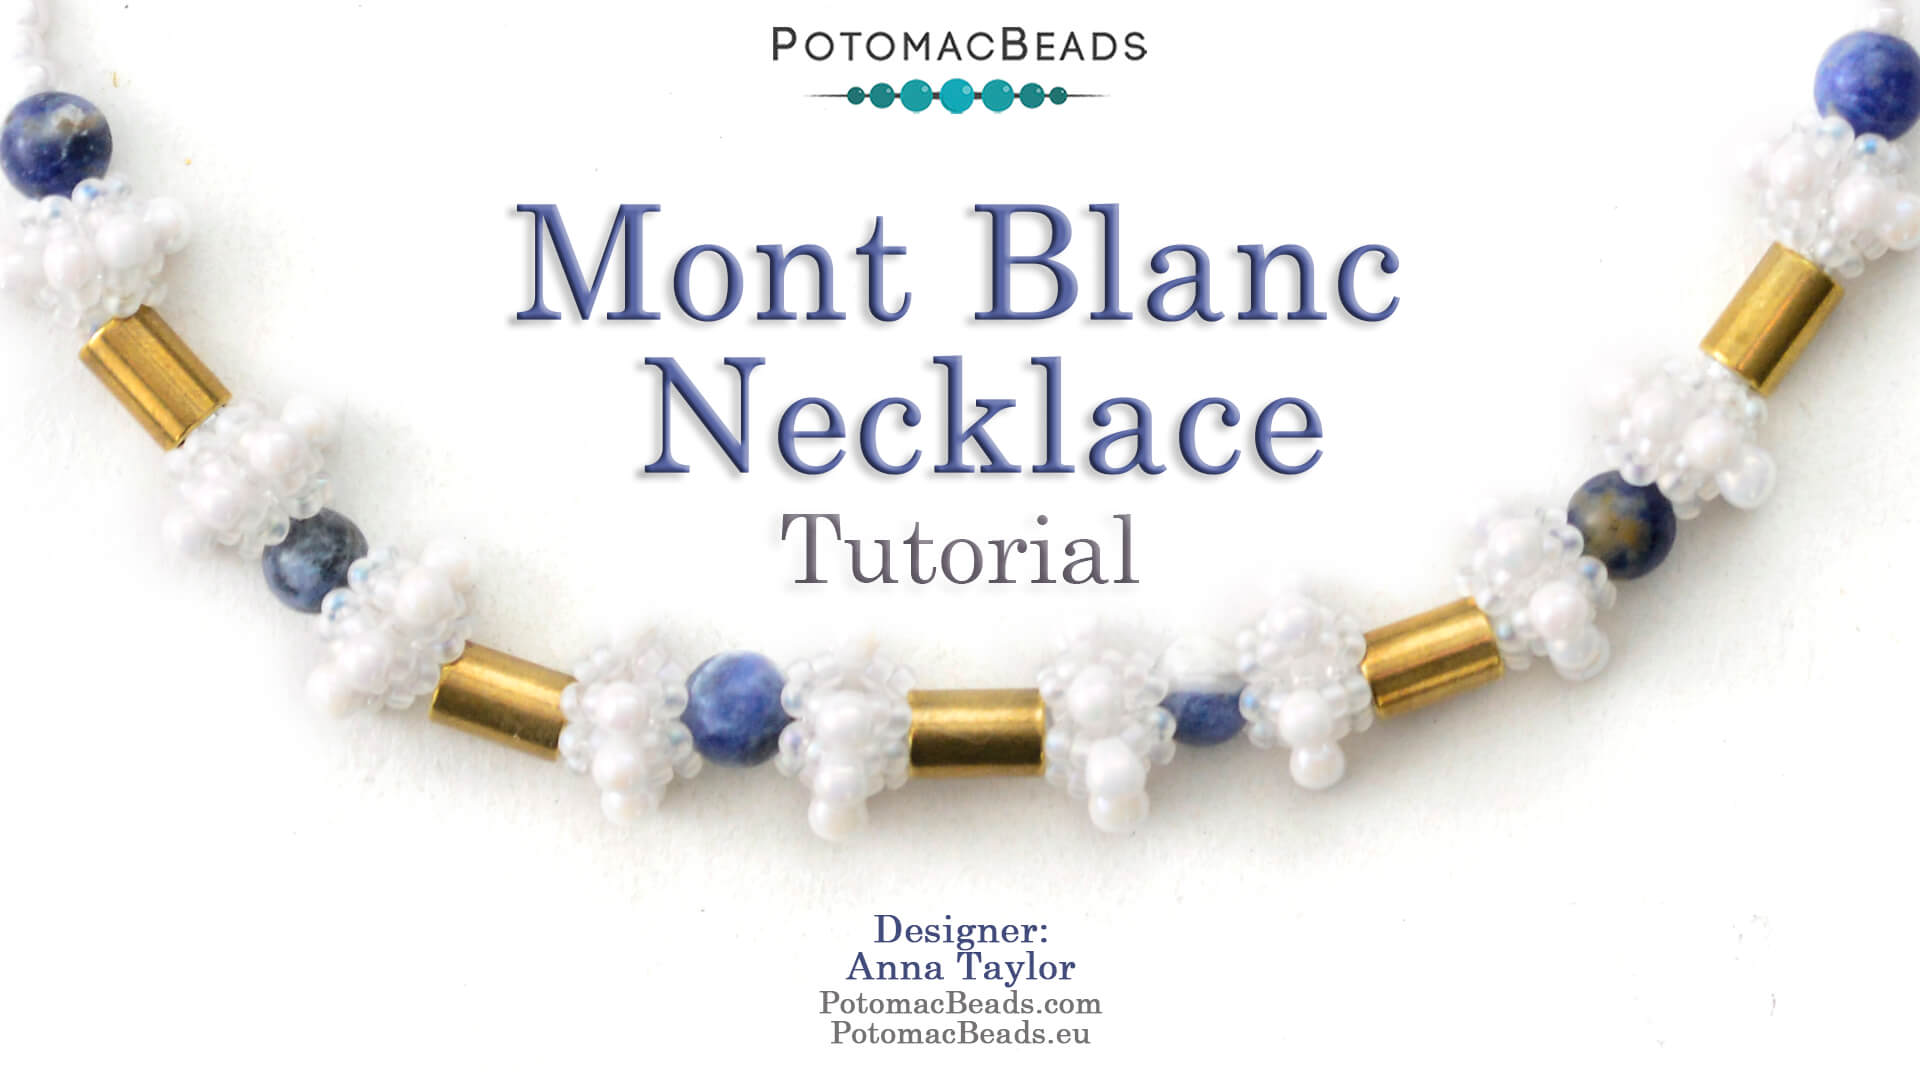 How to Bead Jewelry / Videos Sorted by Beads / Gemstone Videos / Mont Blanc Necklace Tutorial